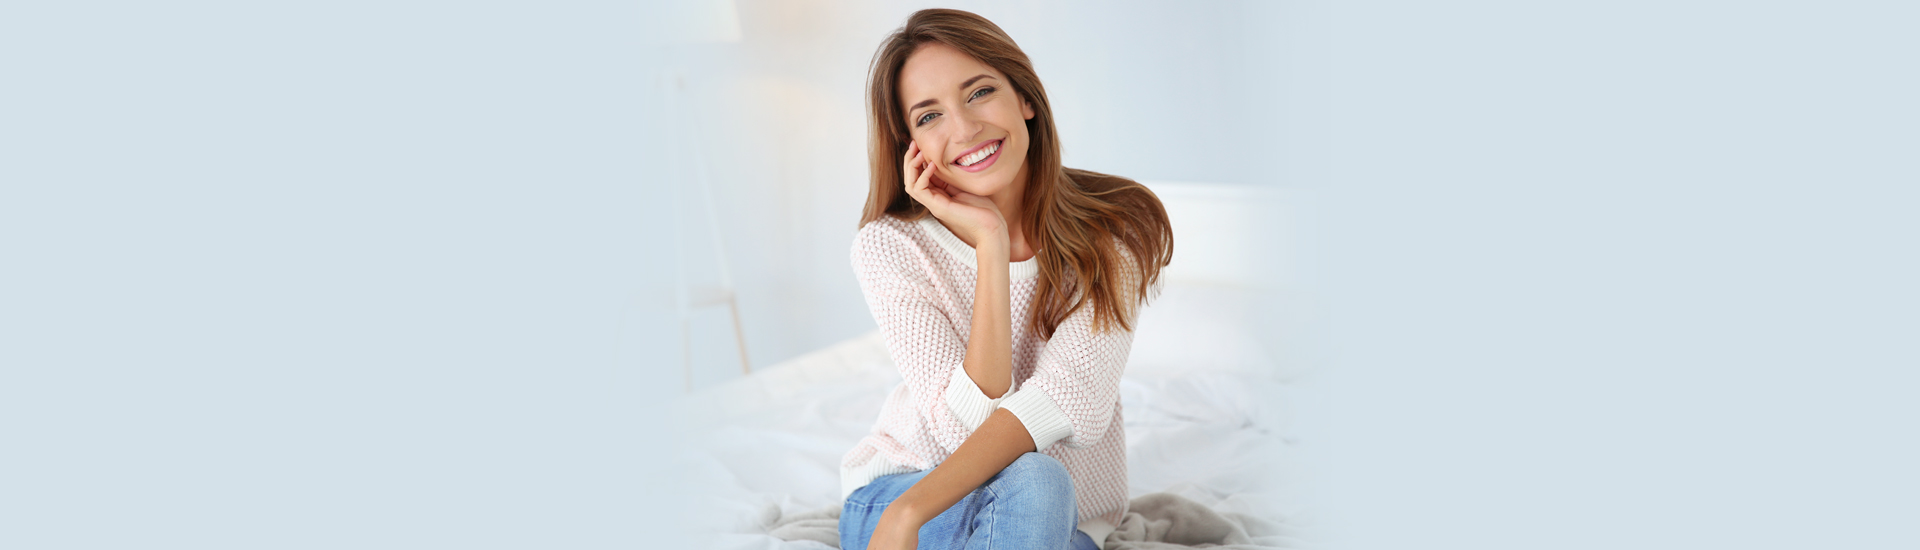 Top 3 Cosmetic Dental Treatments to Improved Smile Aesthetics